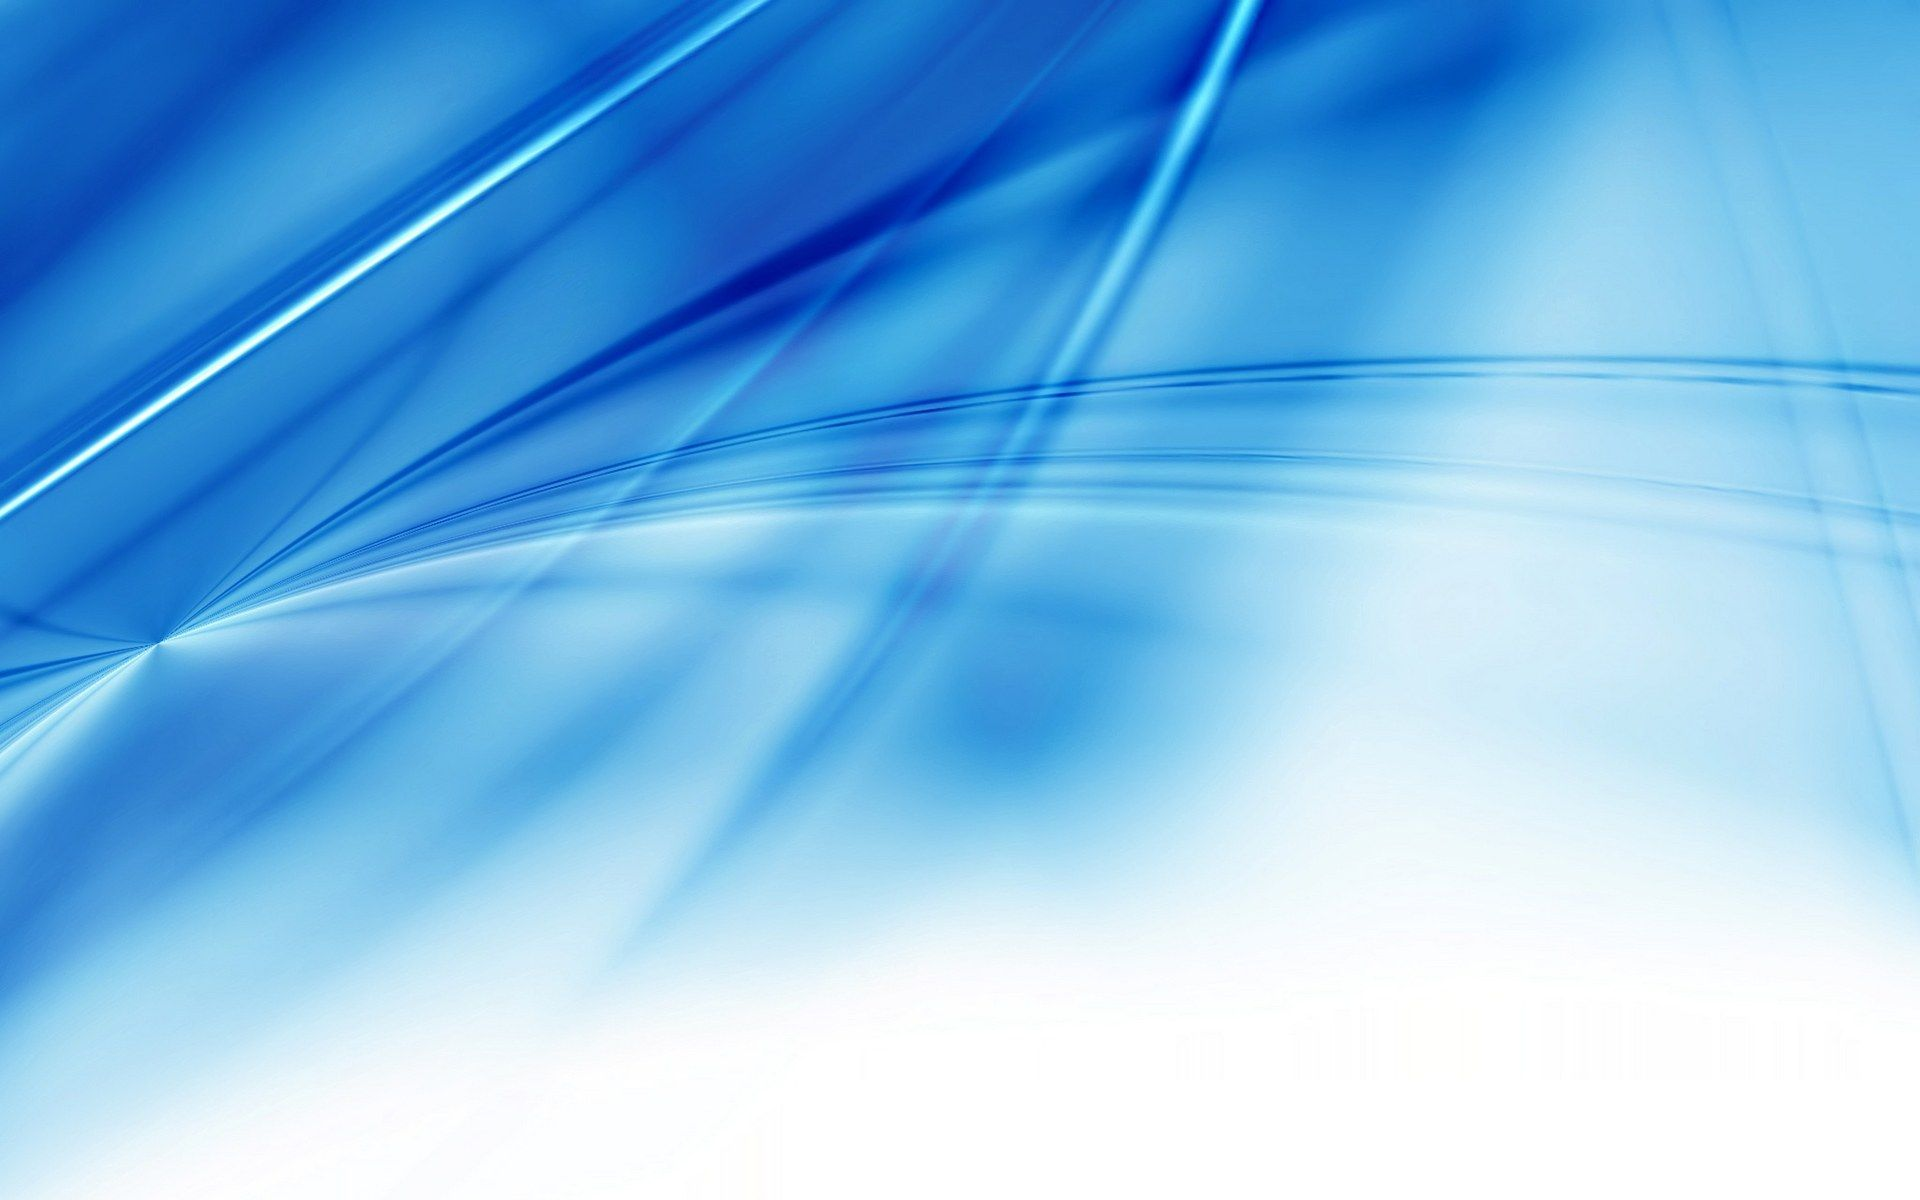 blue and white abstract background hd wallpapers in abstract